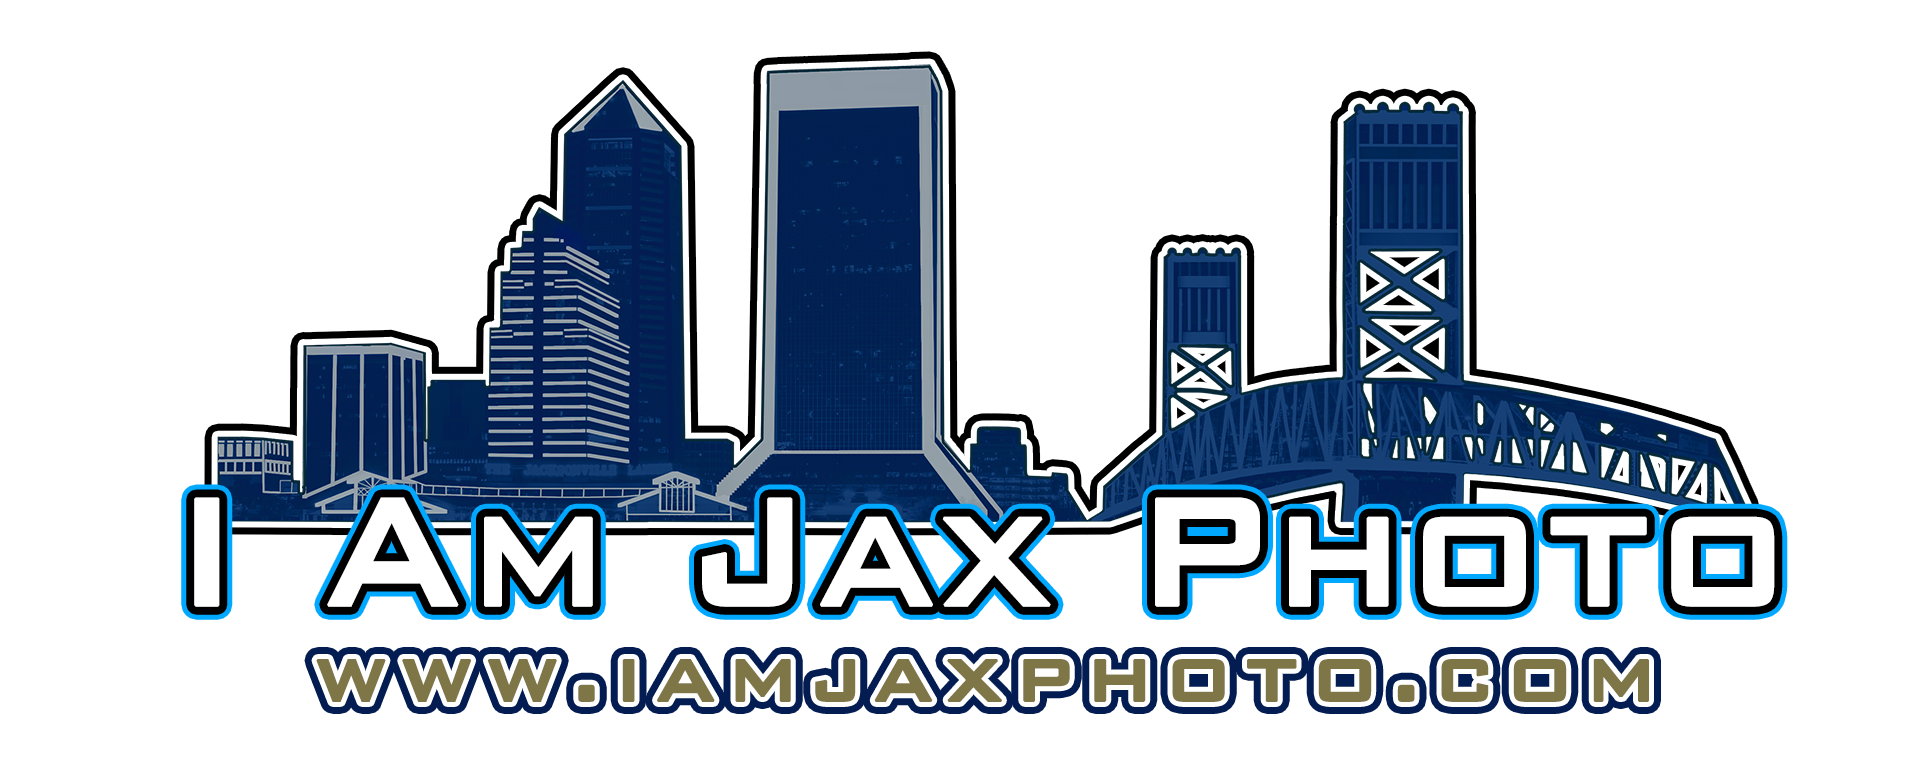 Jacksonville Weddings, Portraits, and Events with prints!